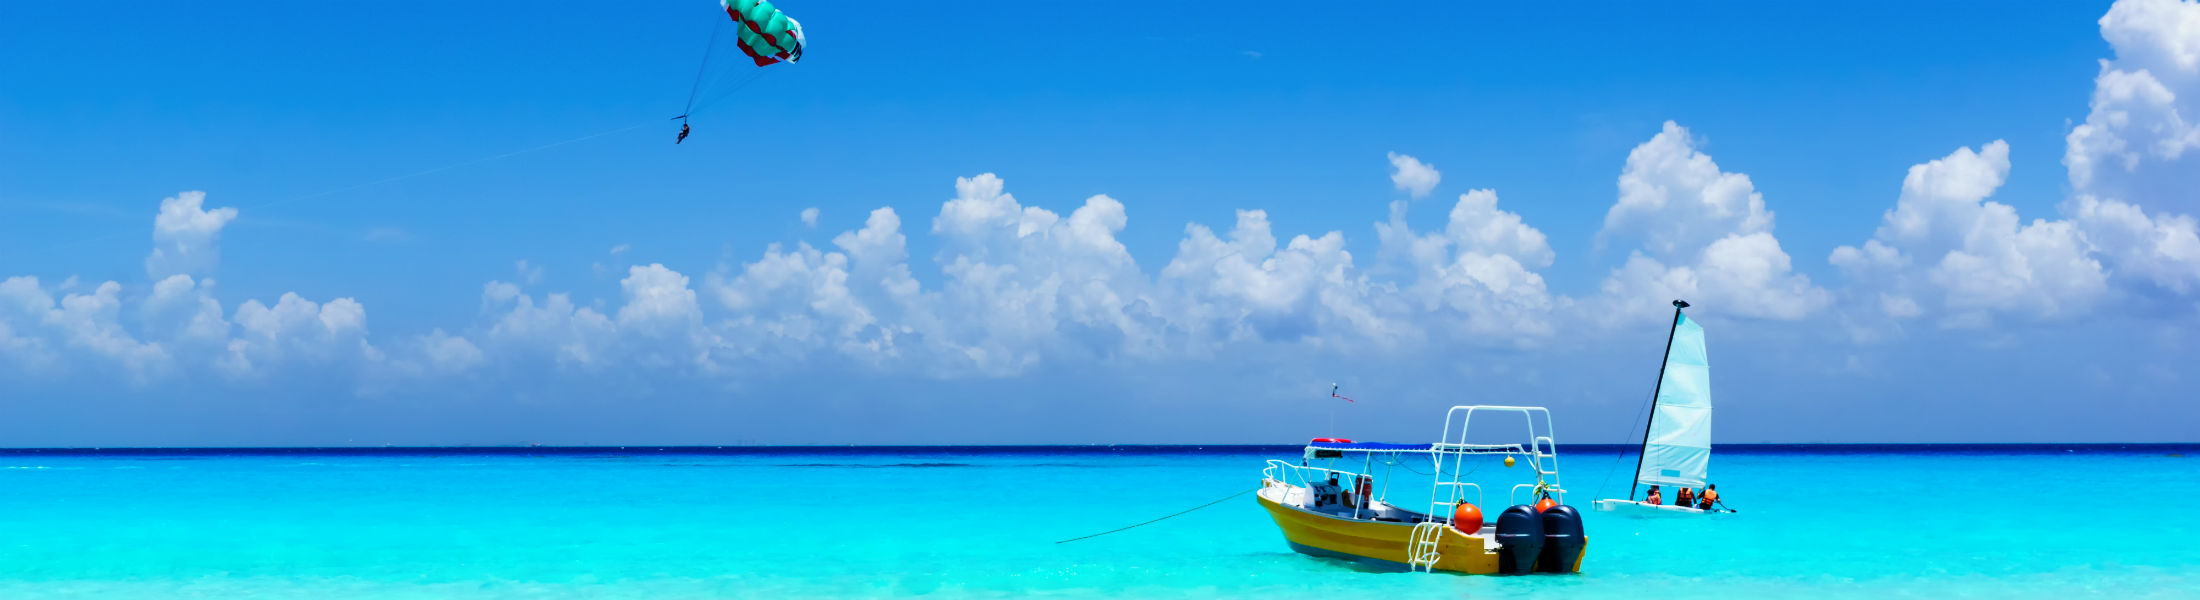 Parasailing in a blue sky waters in the Cancun